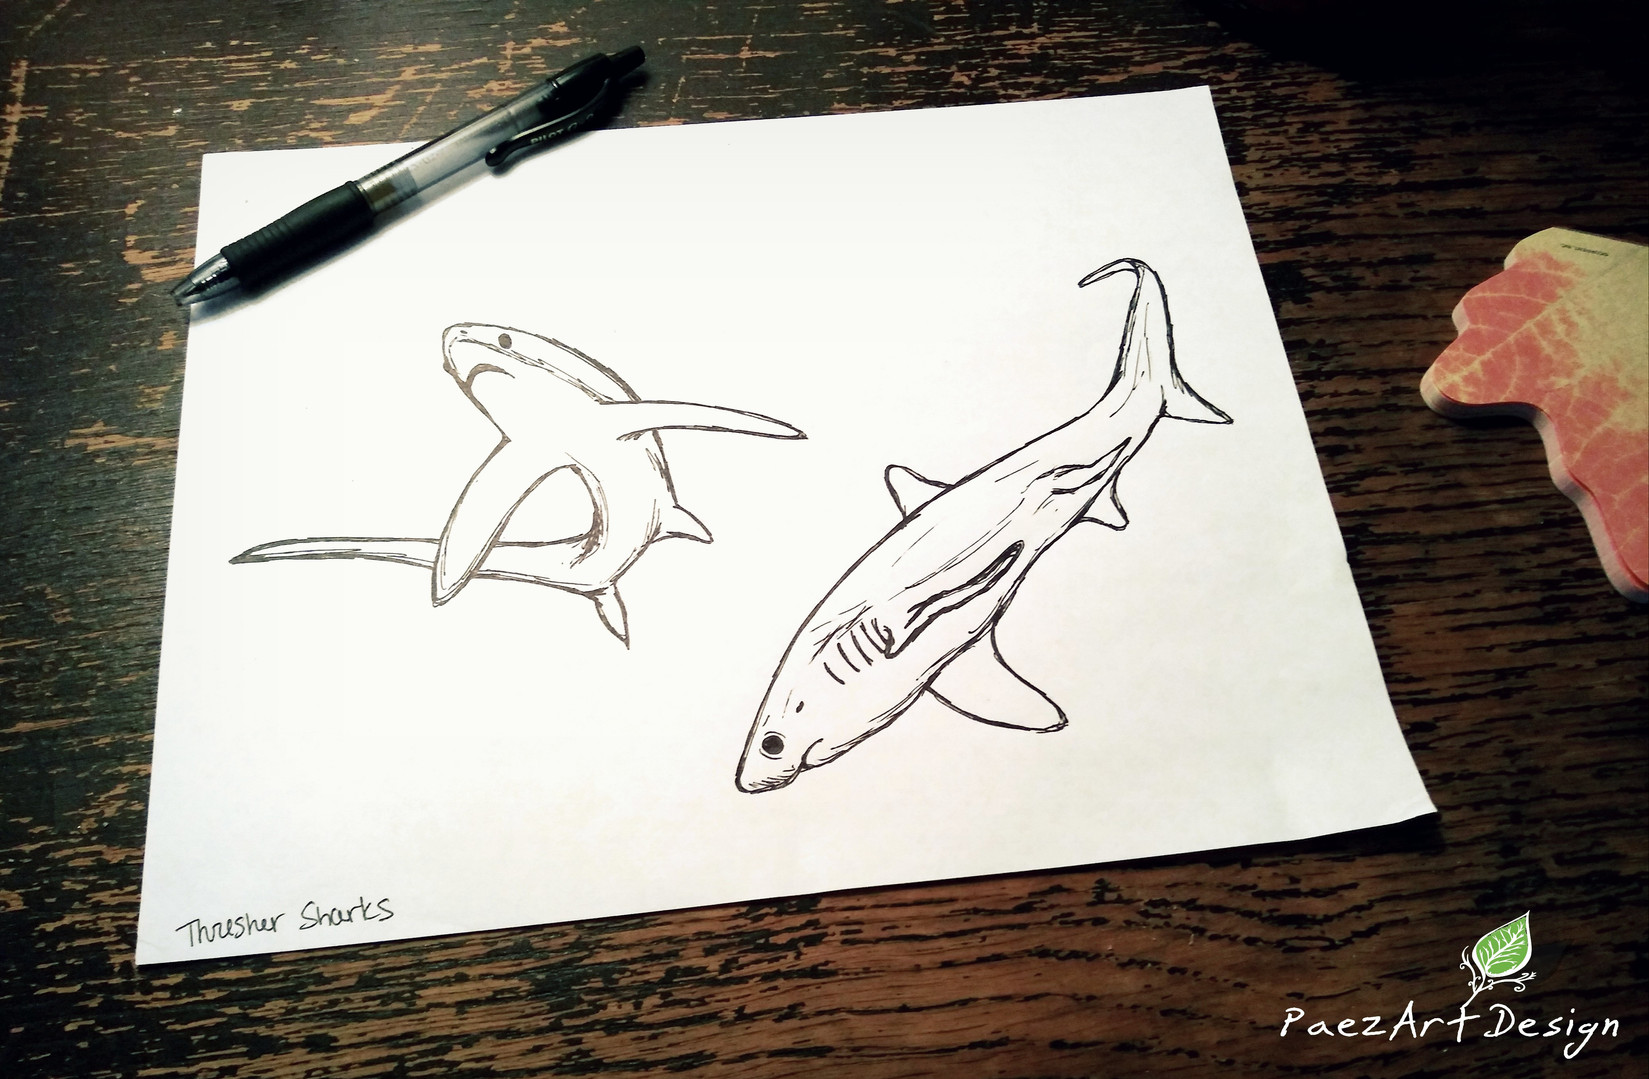 Thresher Shark Sketches